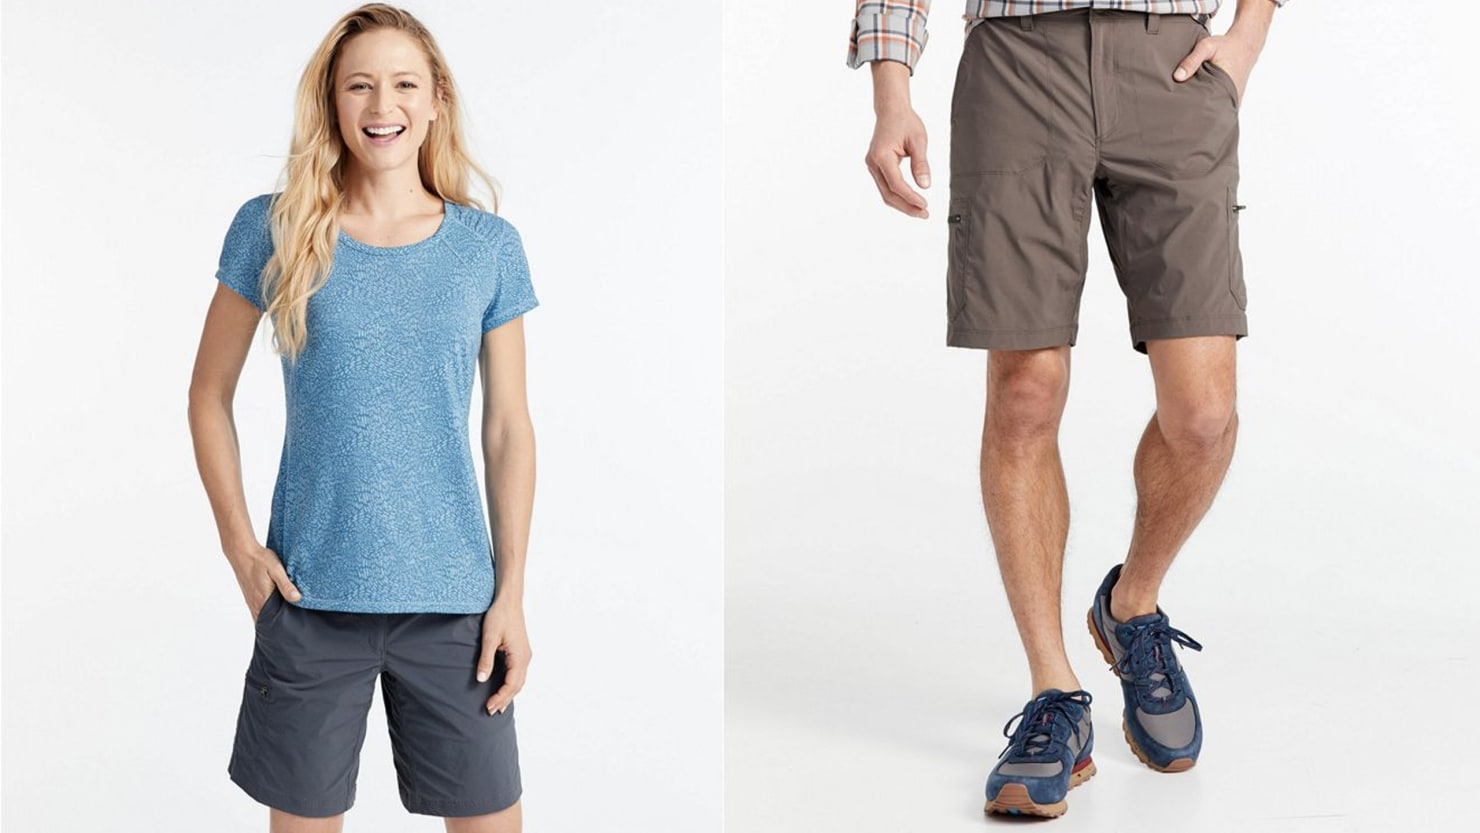 Spend Your Memorial Day With the Sitewide L.L.Bean 20% Off Sale